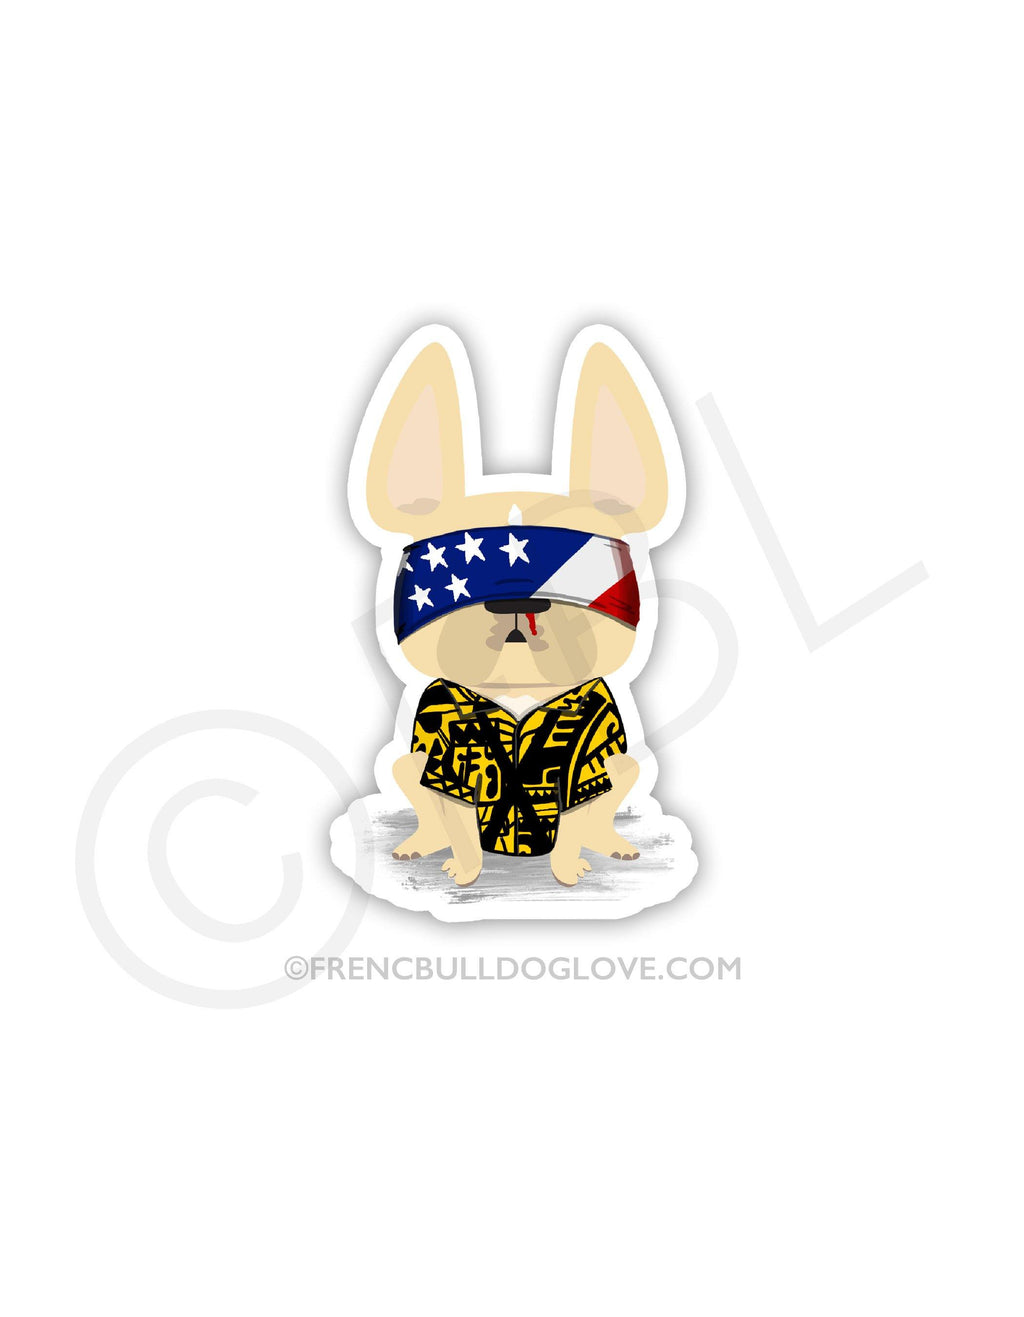 #100DAYPROJECT - STRANGER FRENCHIE THINGS VINYL FRENCH BULLDOG STICKER